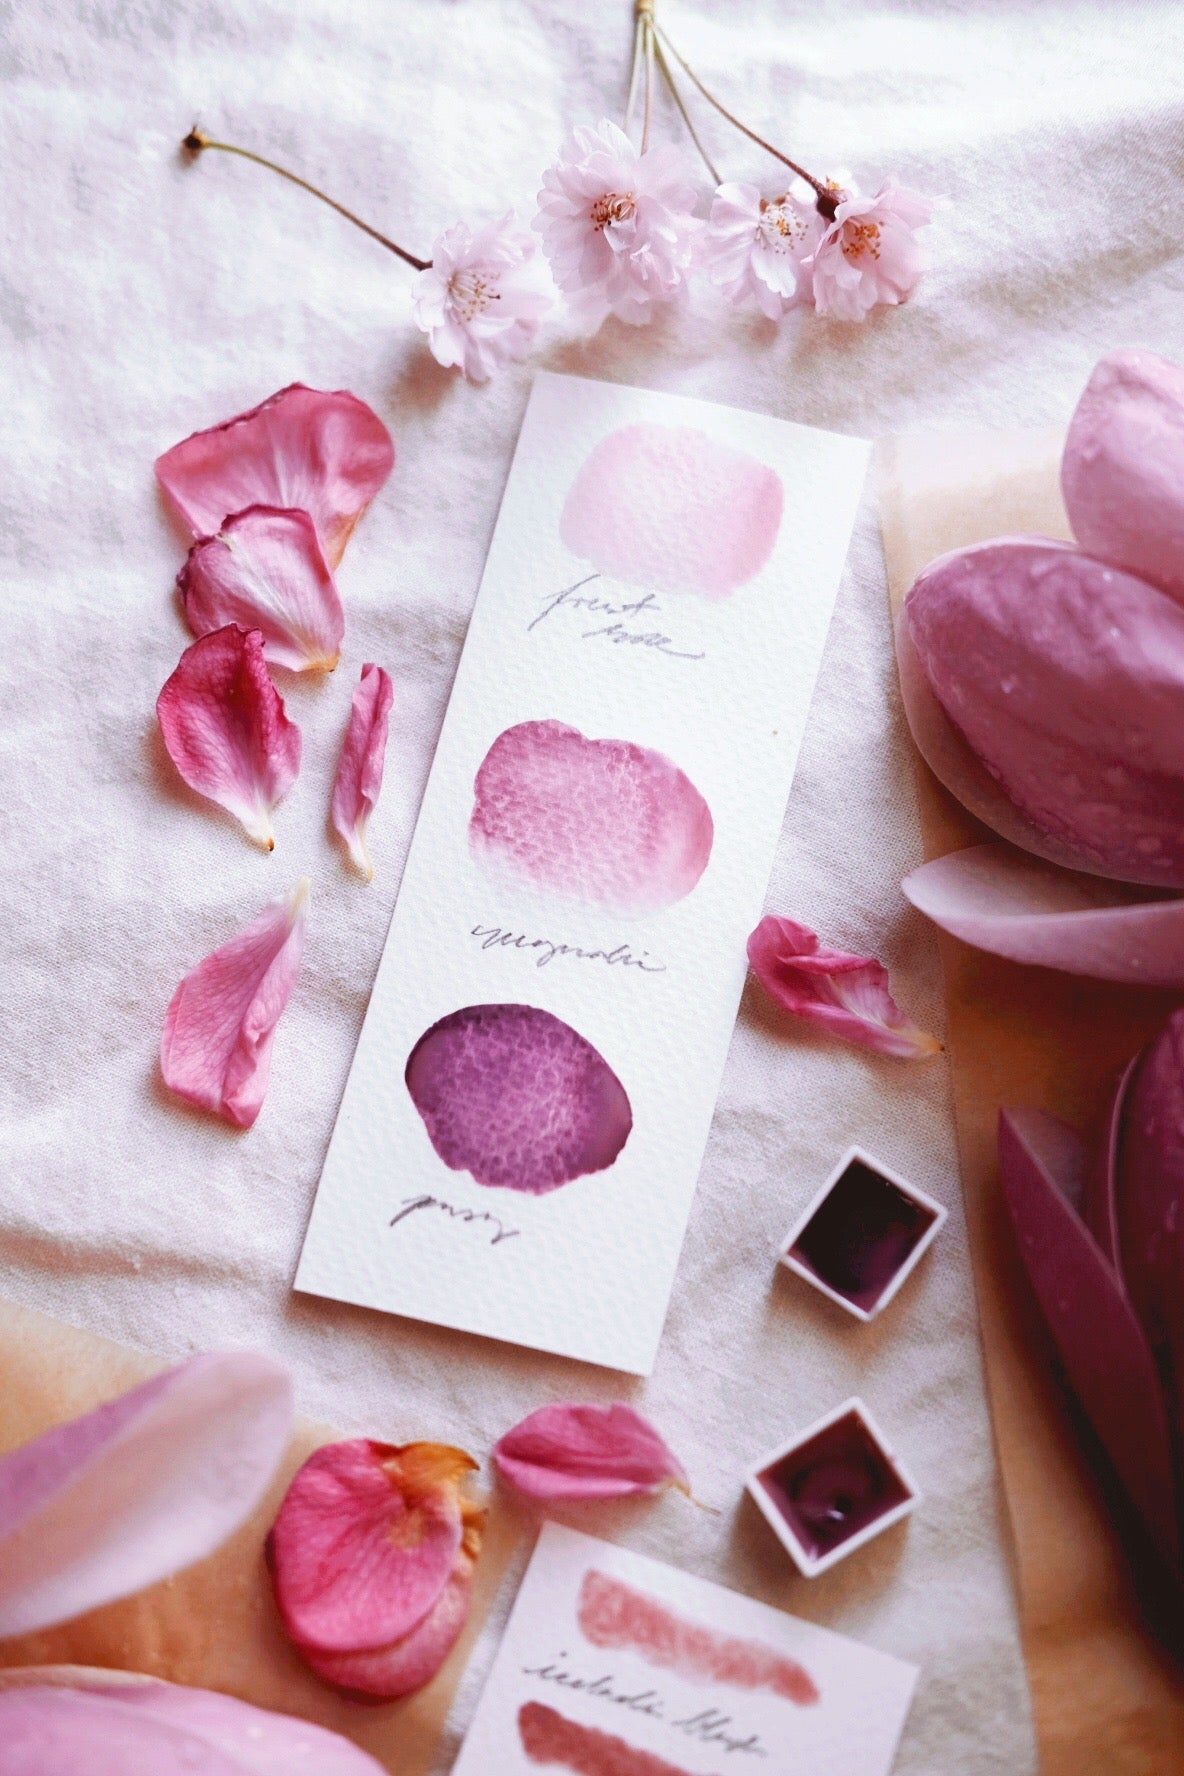 RESERVE for Arielle + Pink Blossom + Limited edition gemstone watercolor palette